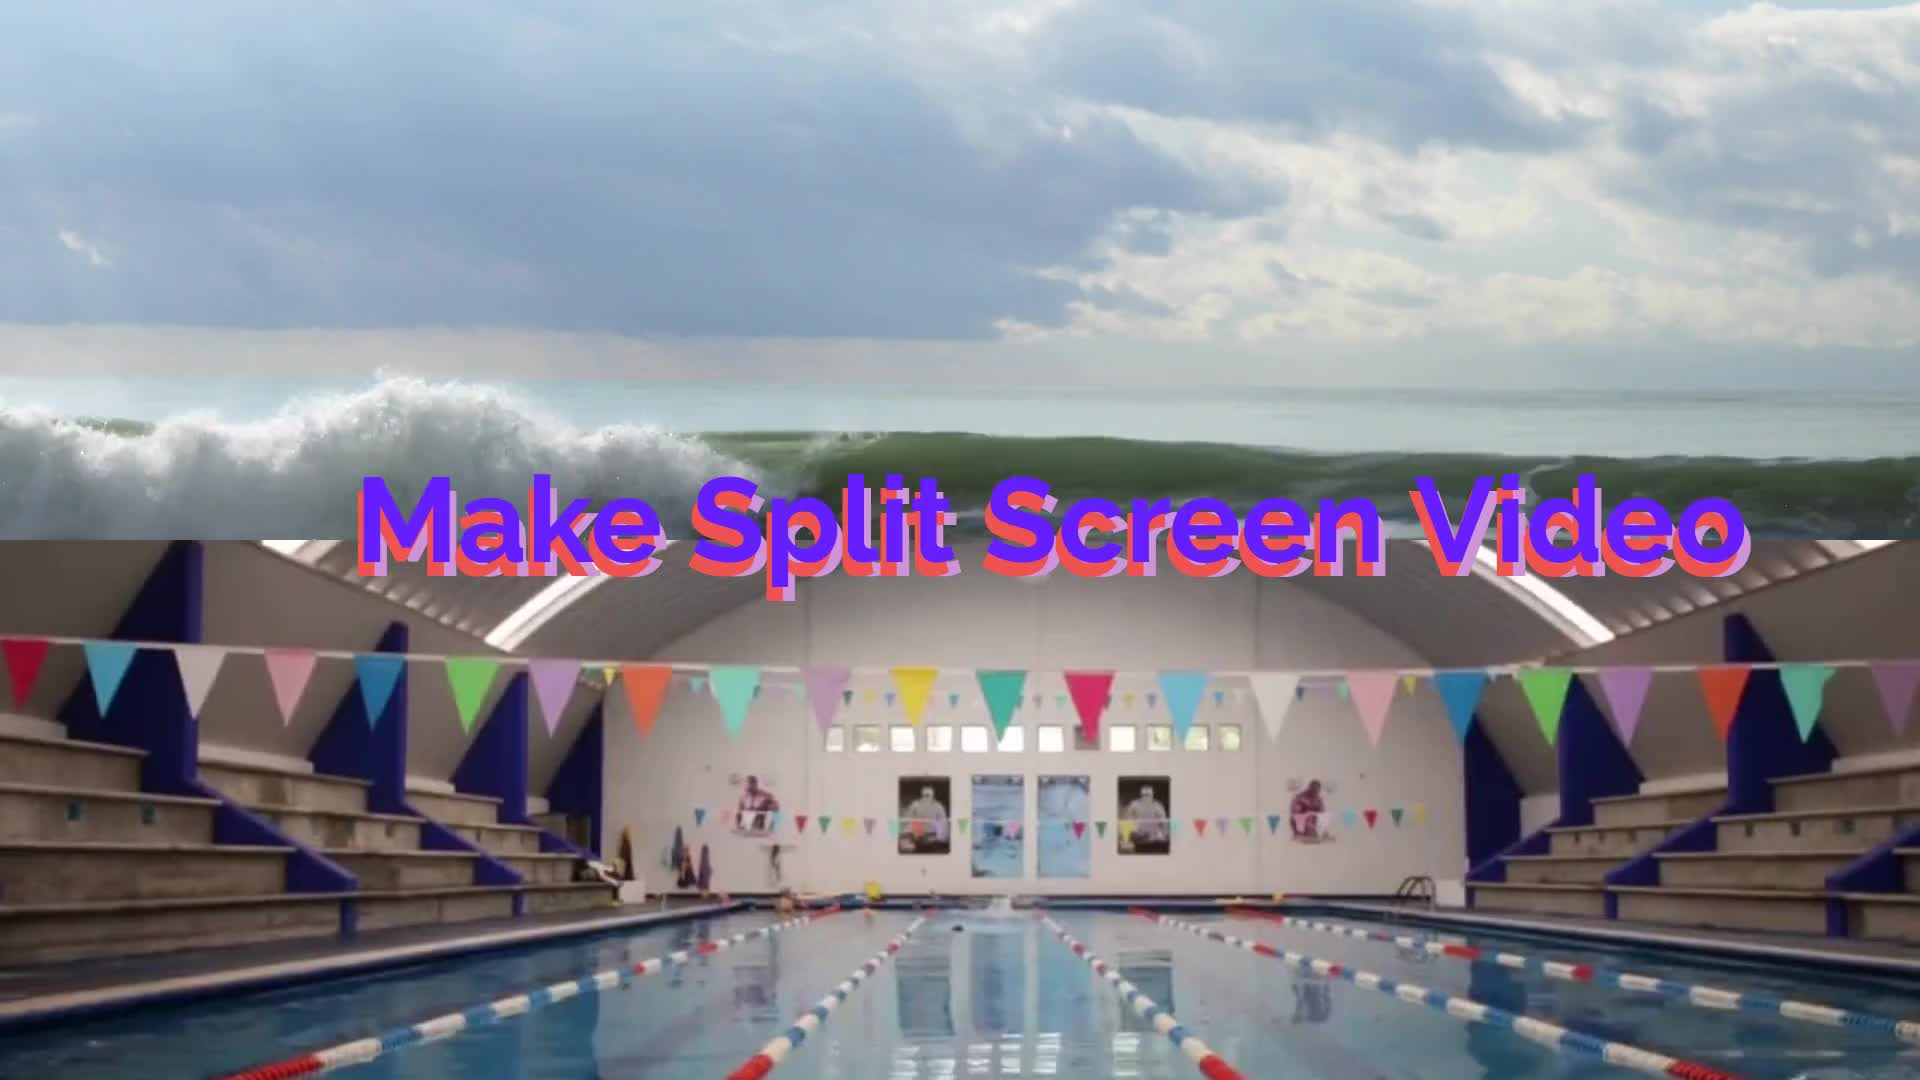 How to Make a Split Screen Video